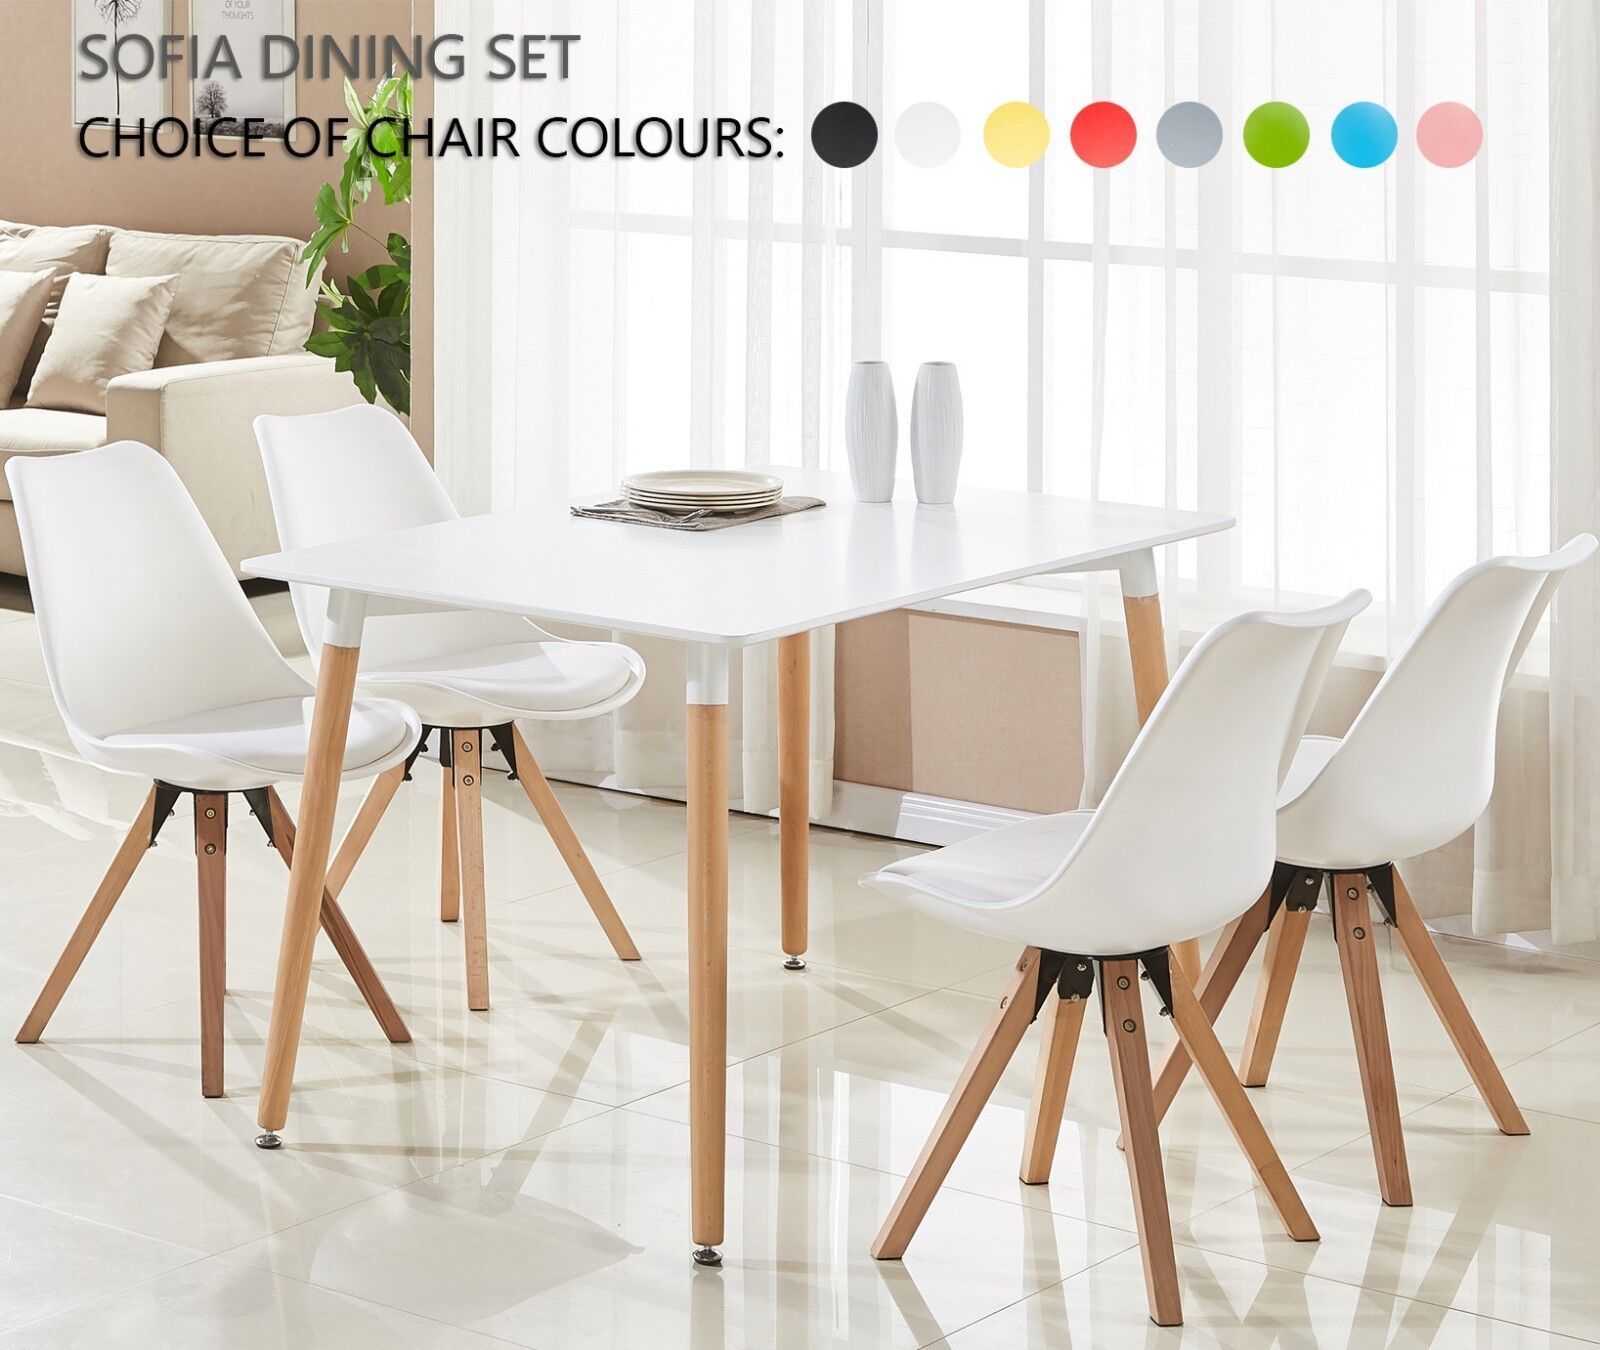 Swell Details About Sofia Dining Set 4 X Sofia Padded Dining Chairs White Halo Dining Table Pabps2019 Chair Design Images Pabps2019Com